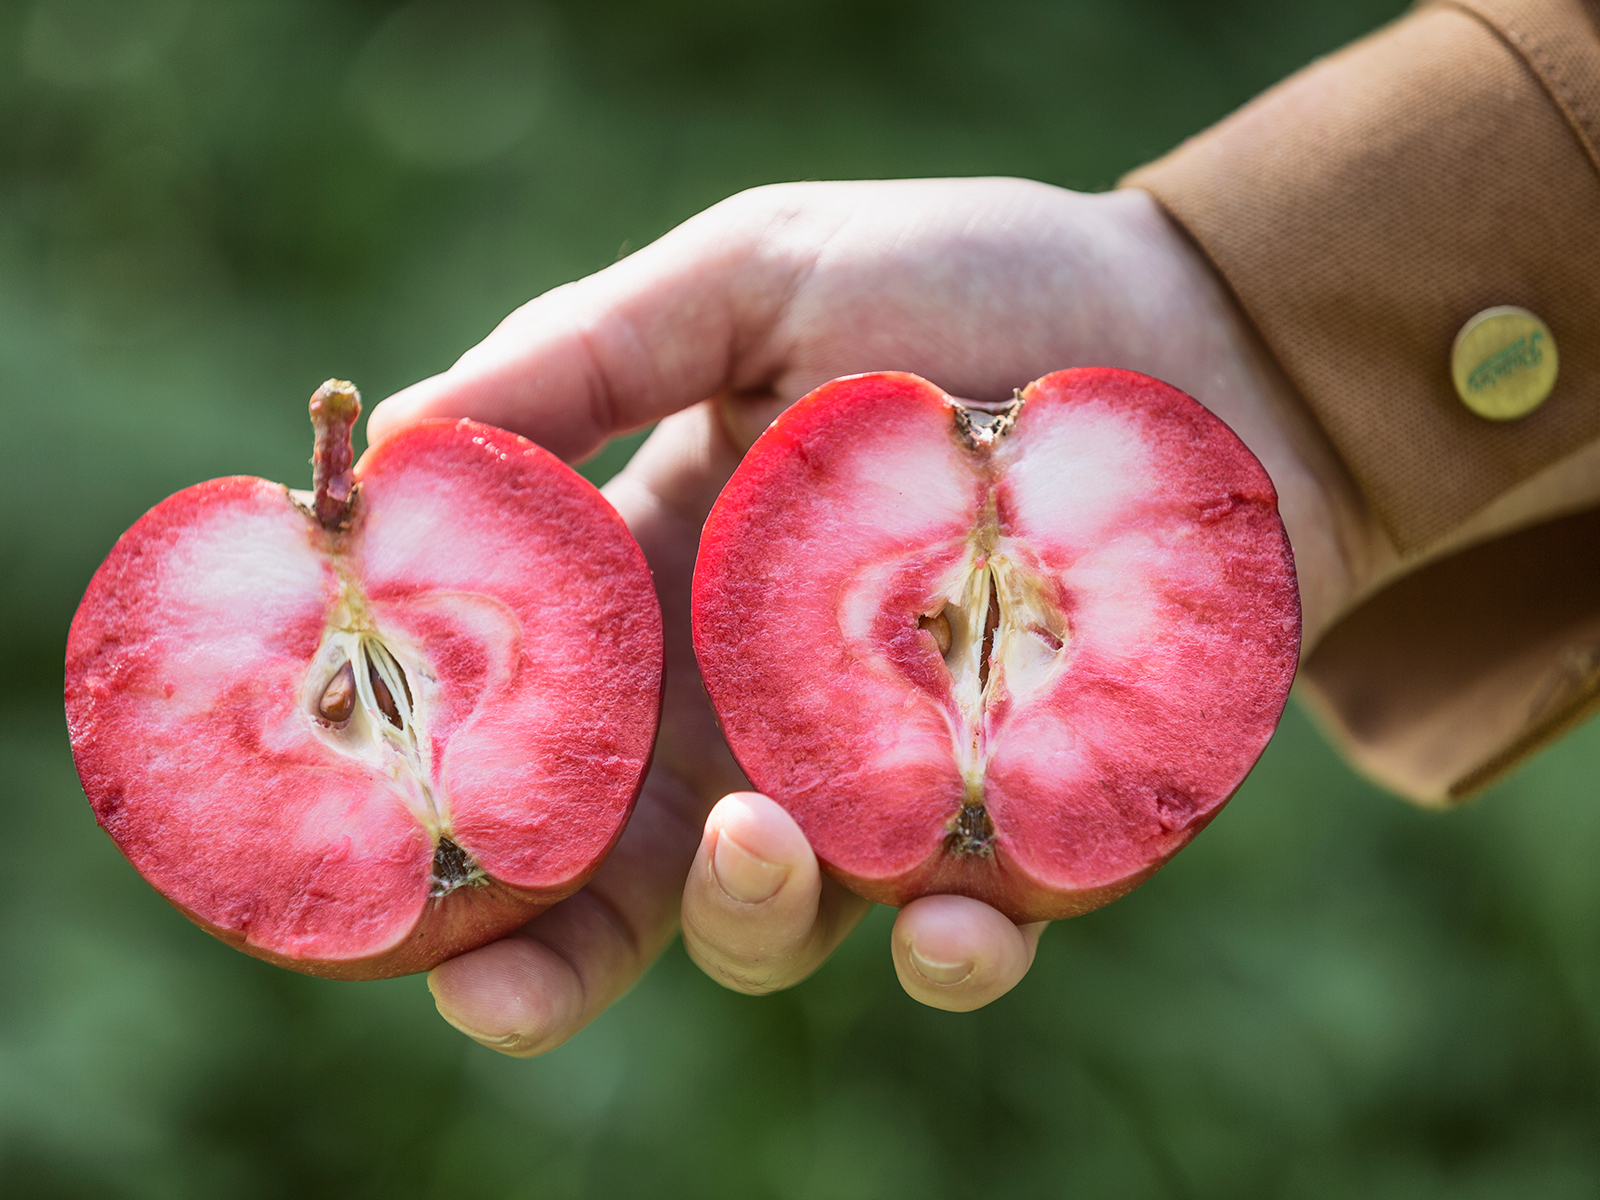 The Year of Rosé Cider Is Upon Us